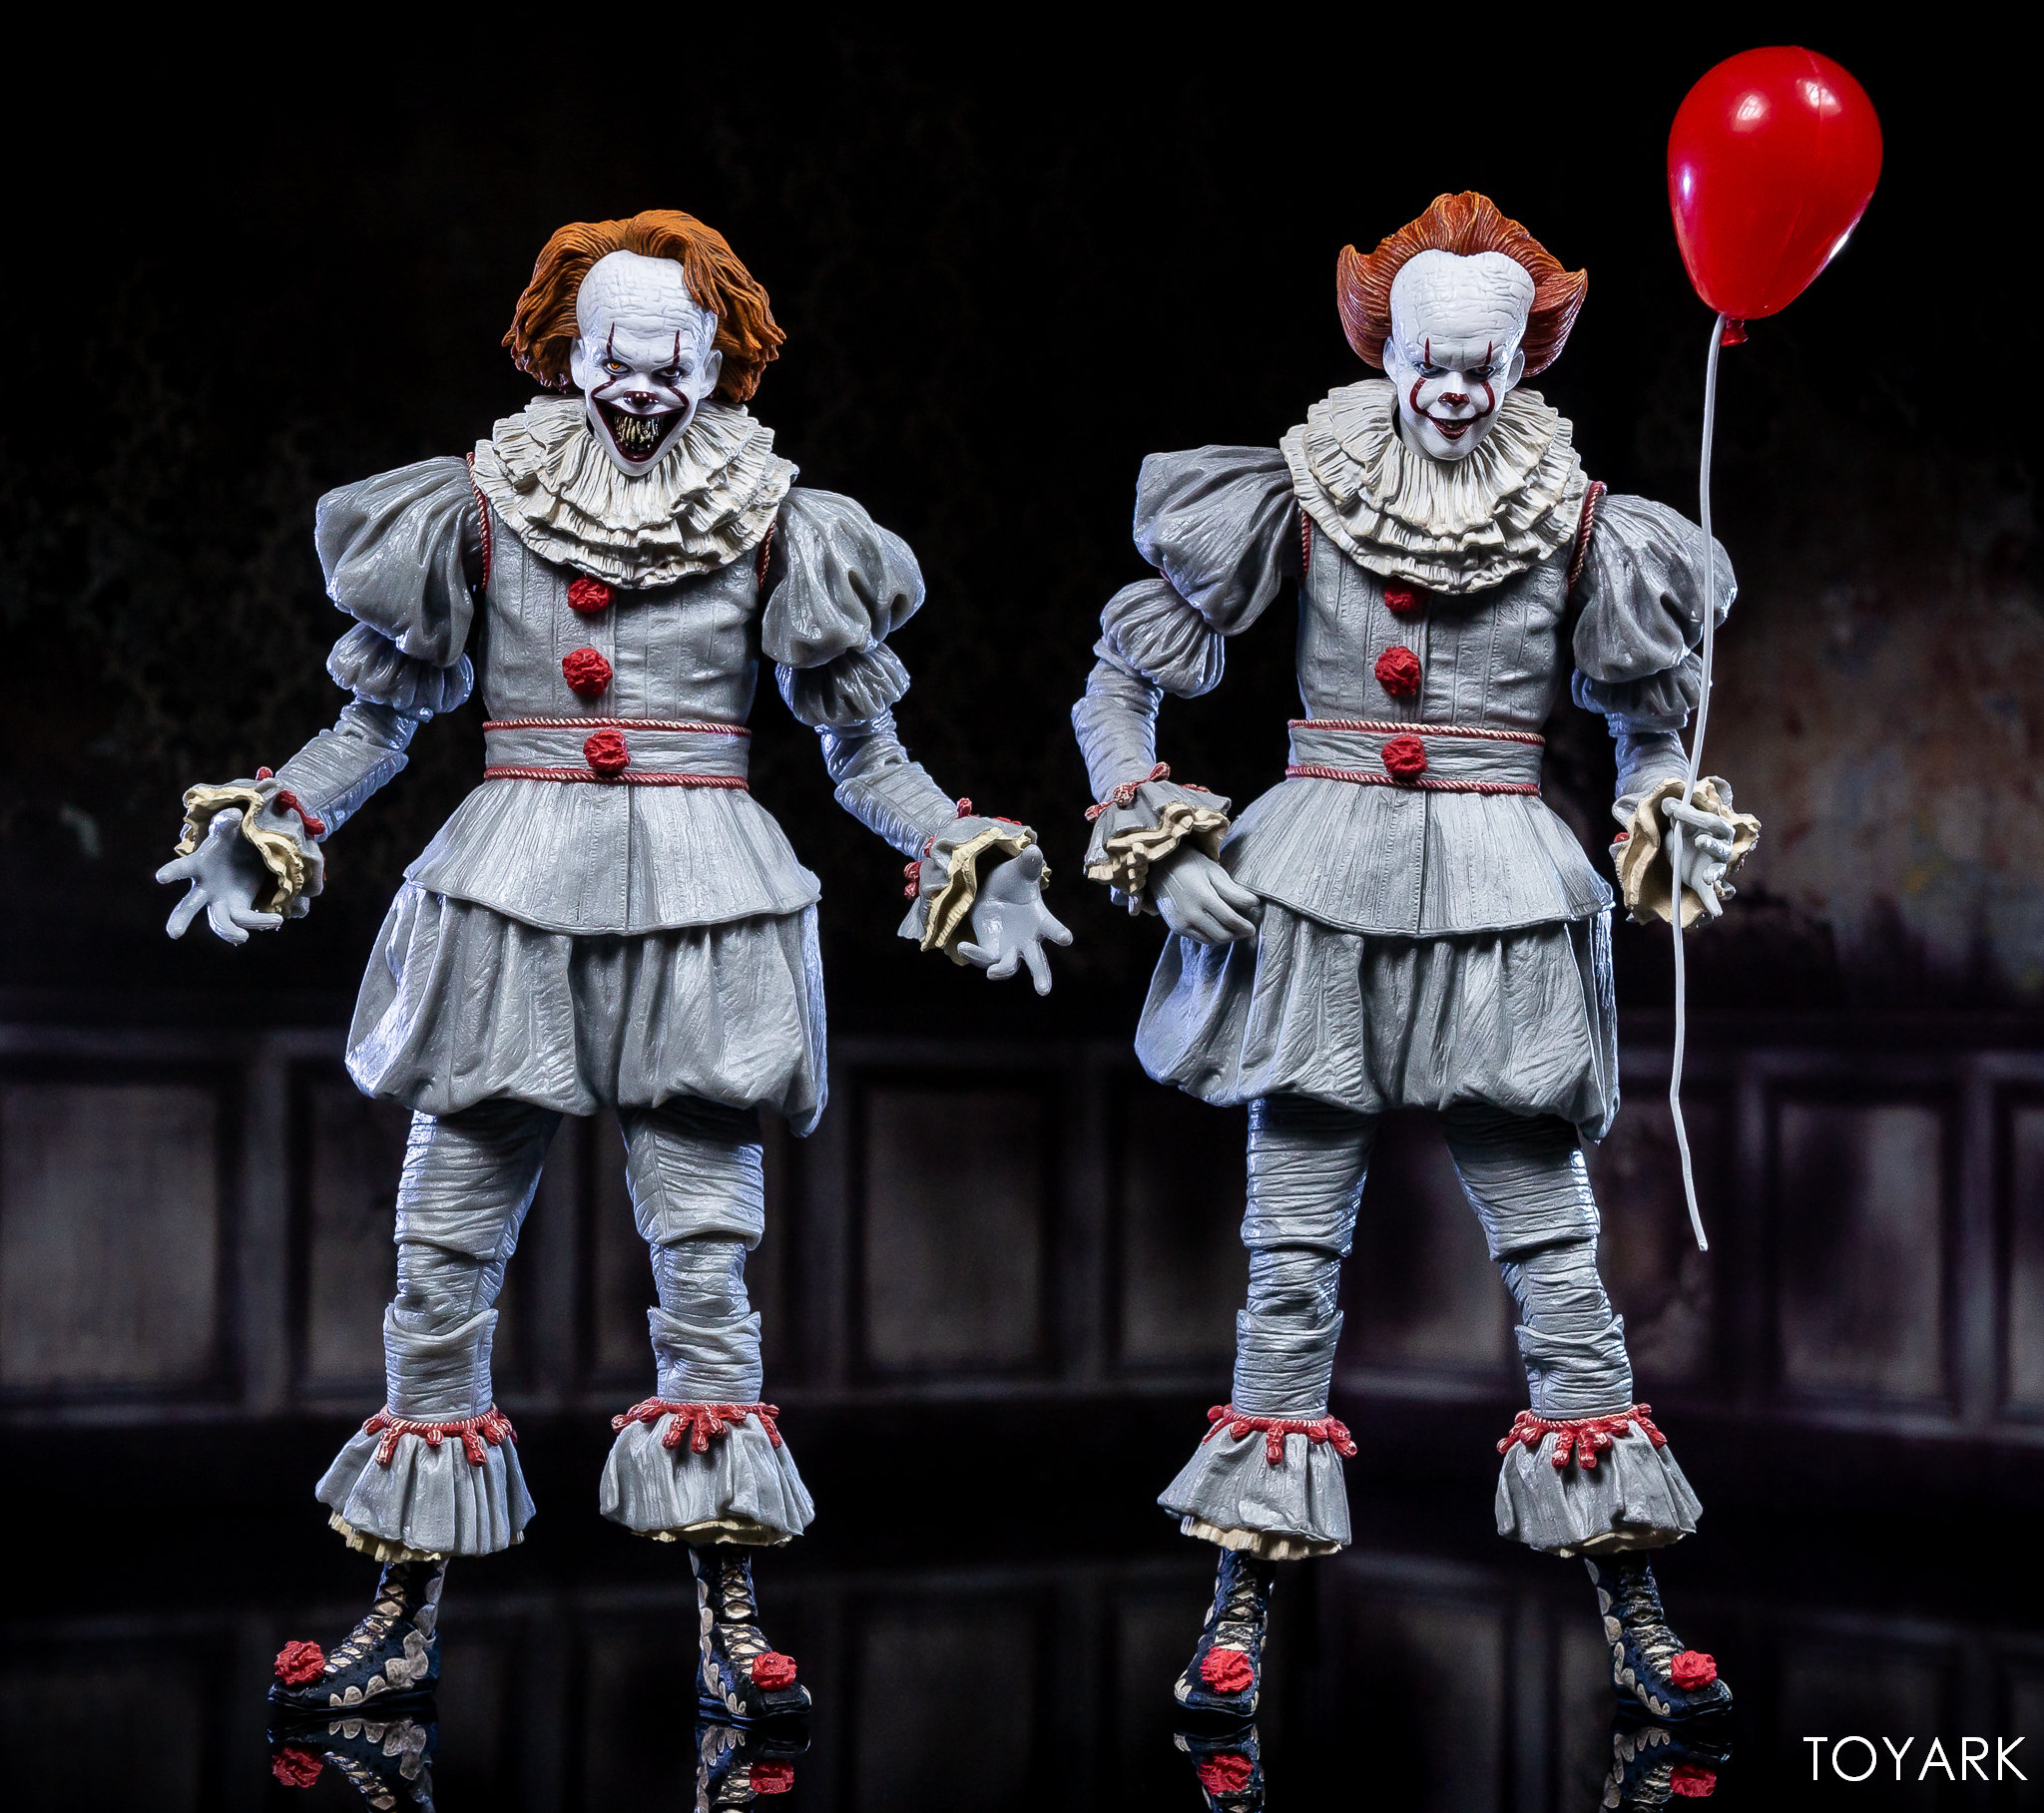 https://news.toyark.com/wp-content/uploads/sites/4/2019/03/Well-House-Pennywise-Gallery-042.jpg